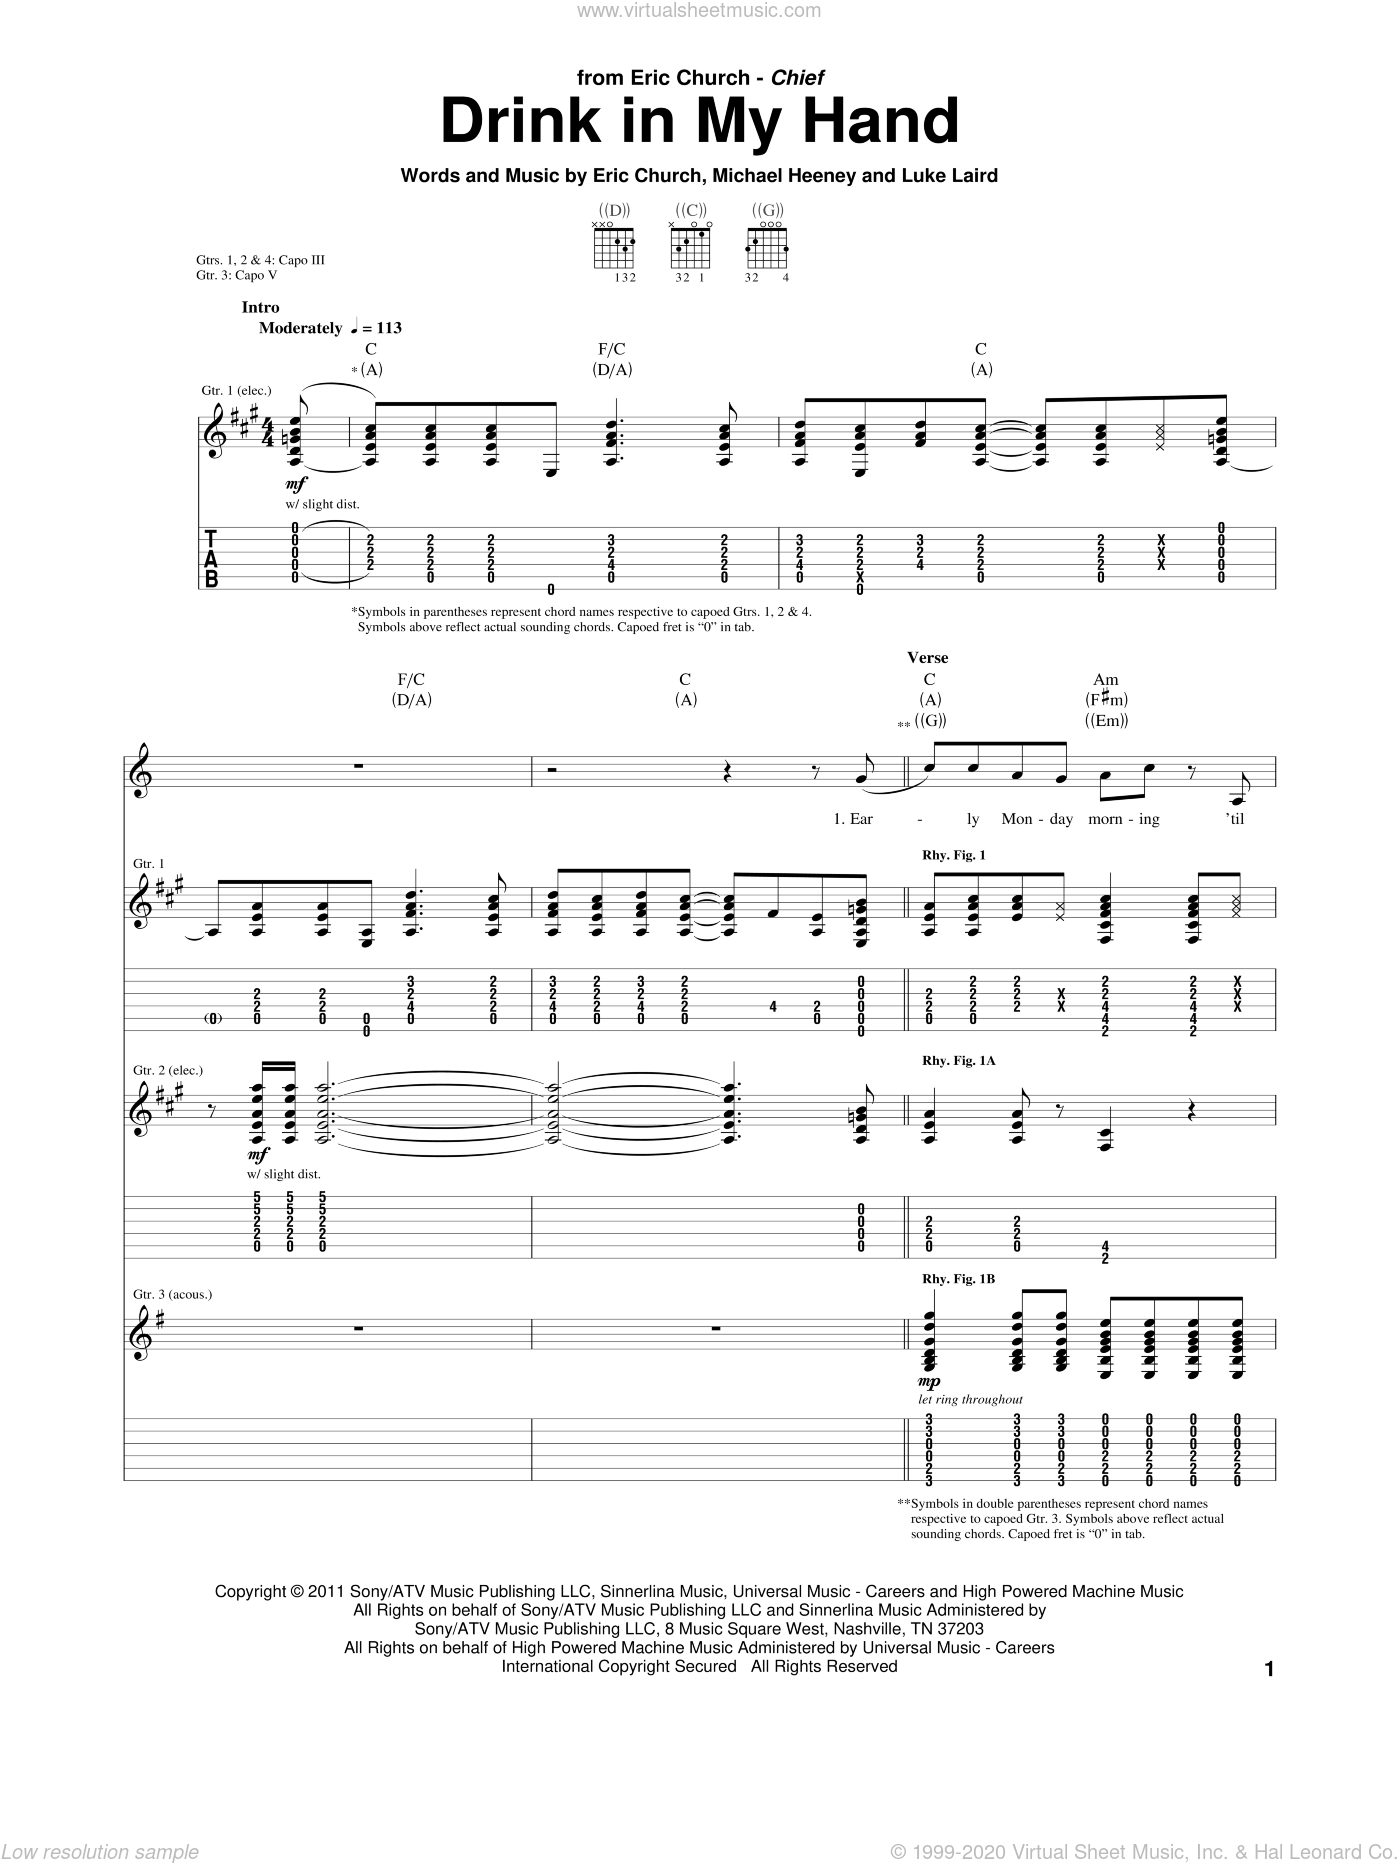 Drink In My Hand sheet music for guitar (tablature) by Michael Heeney, Eric Church and Luke Laird